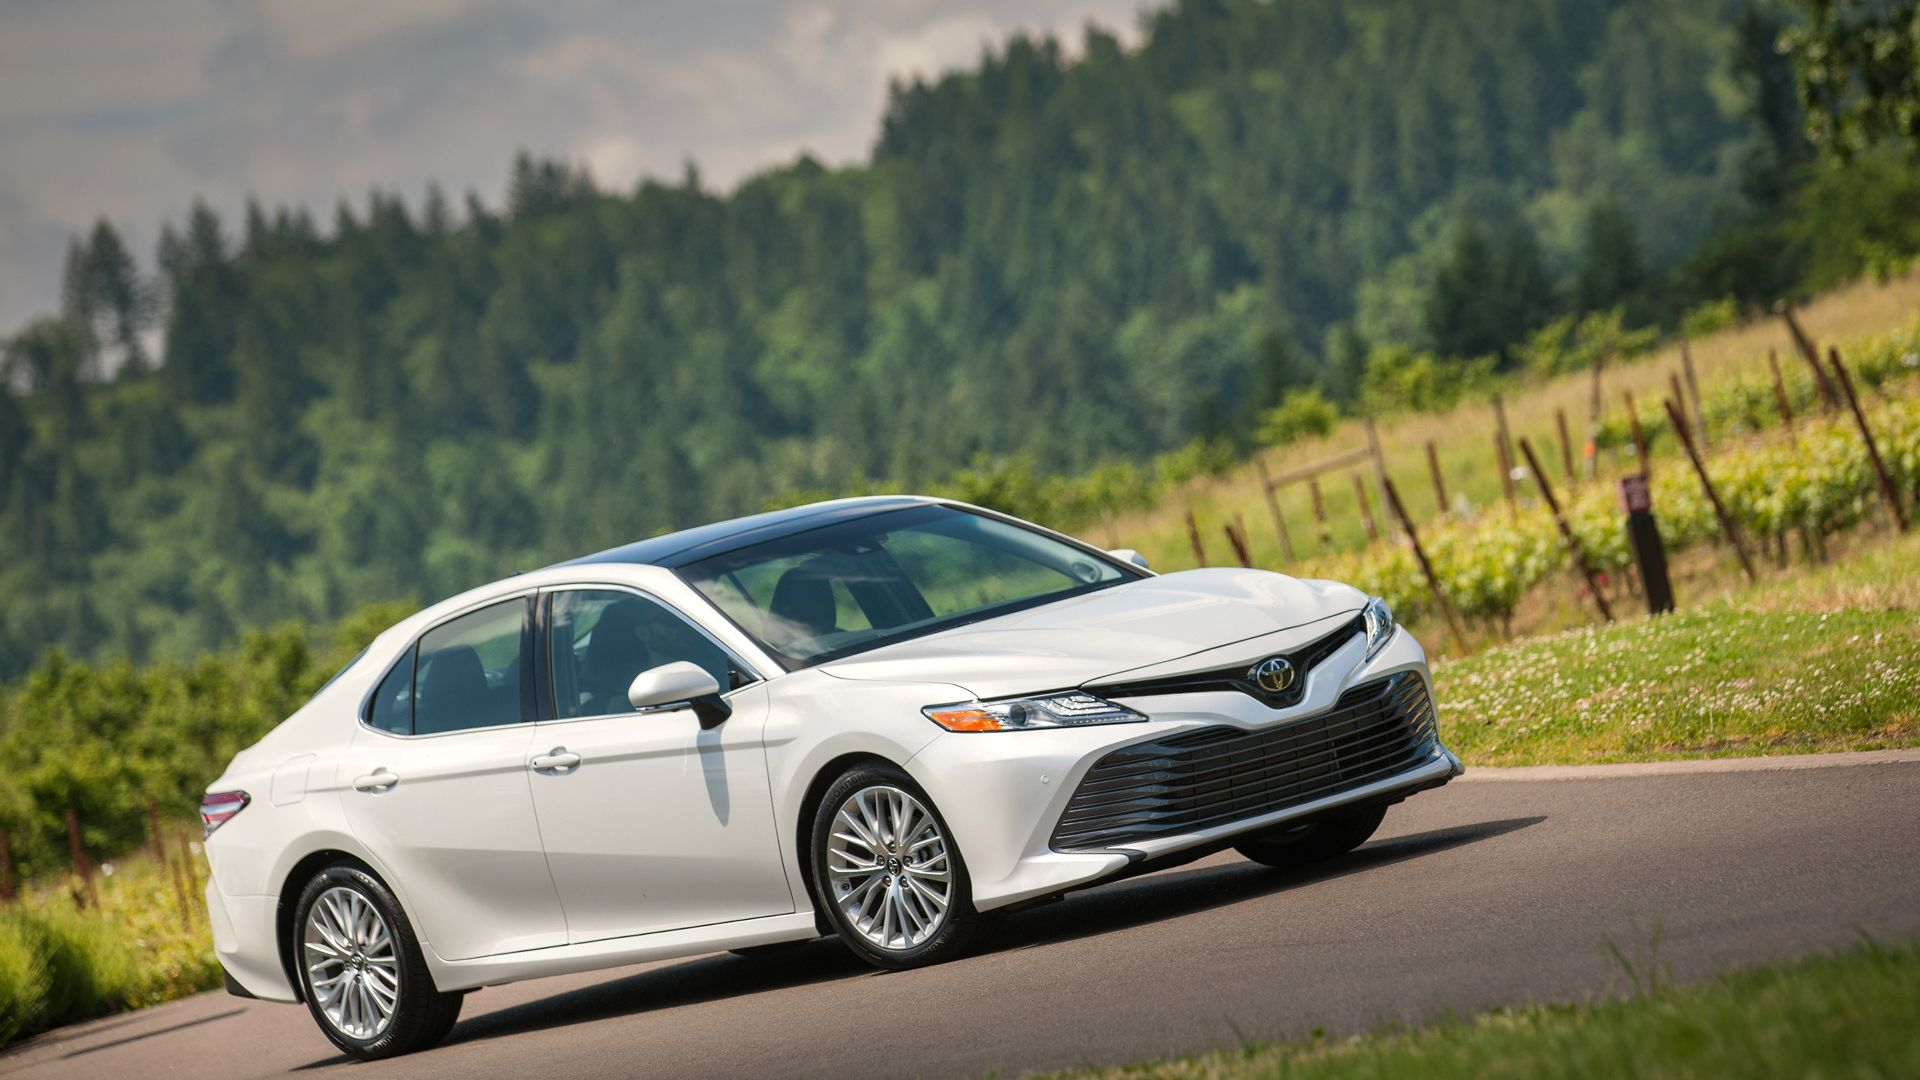 New 2019 Toyota Camry Hybrid First Pictures